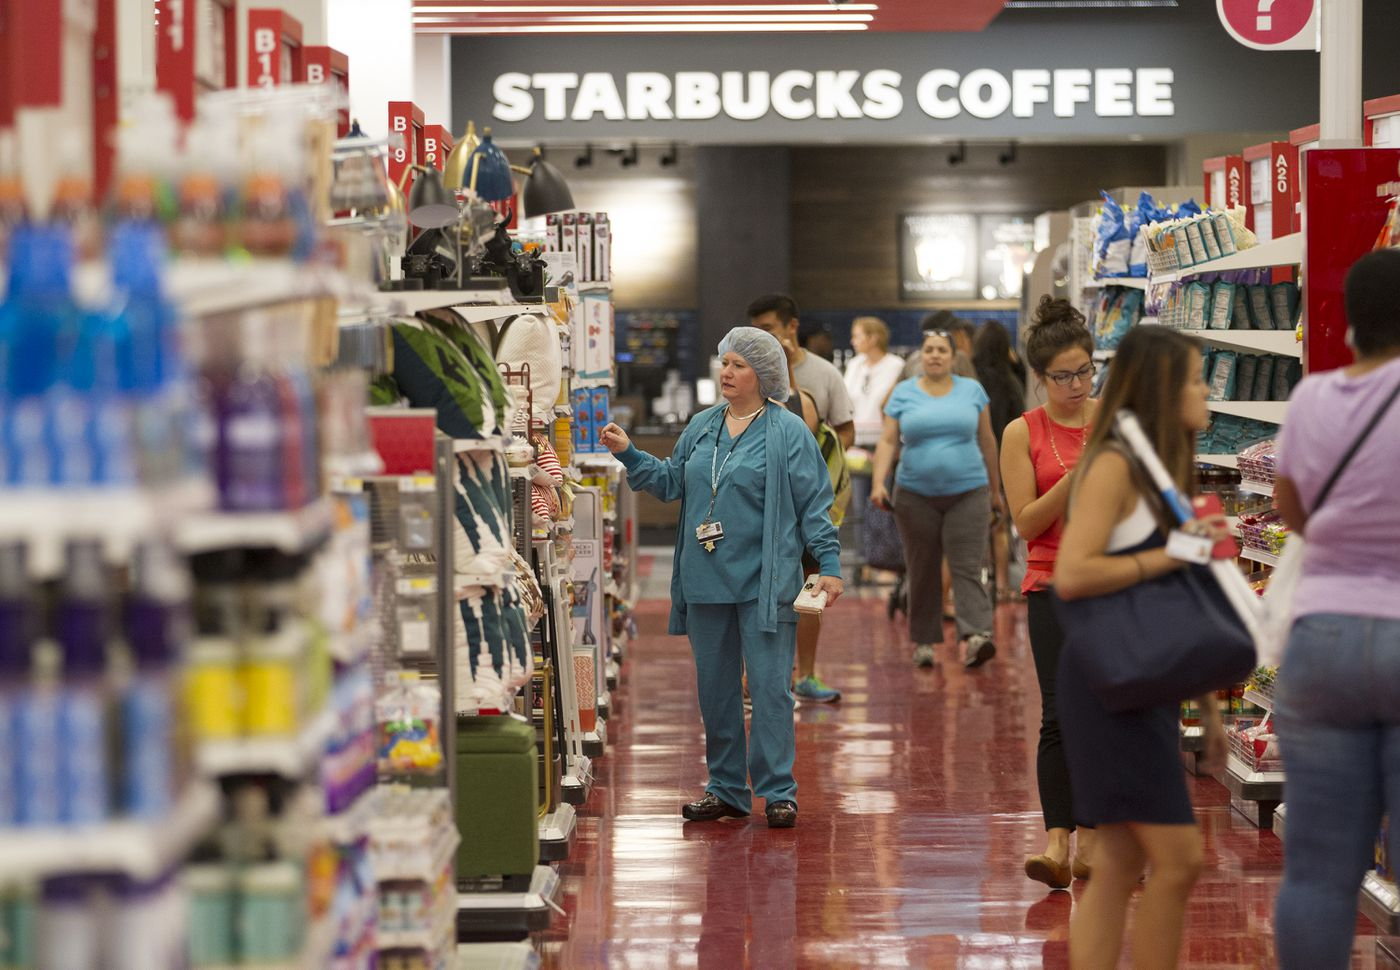 A mini-Target store to go in Devon as second Main Line location